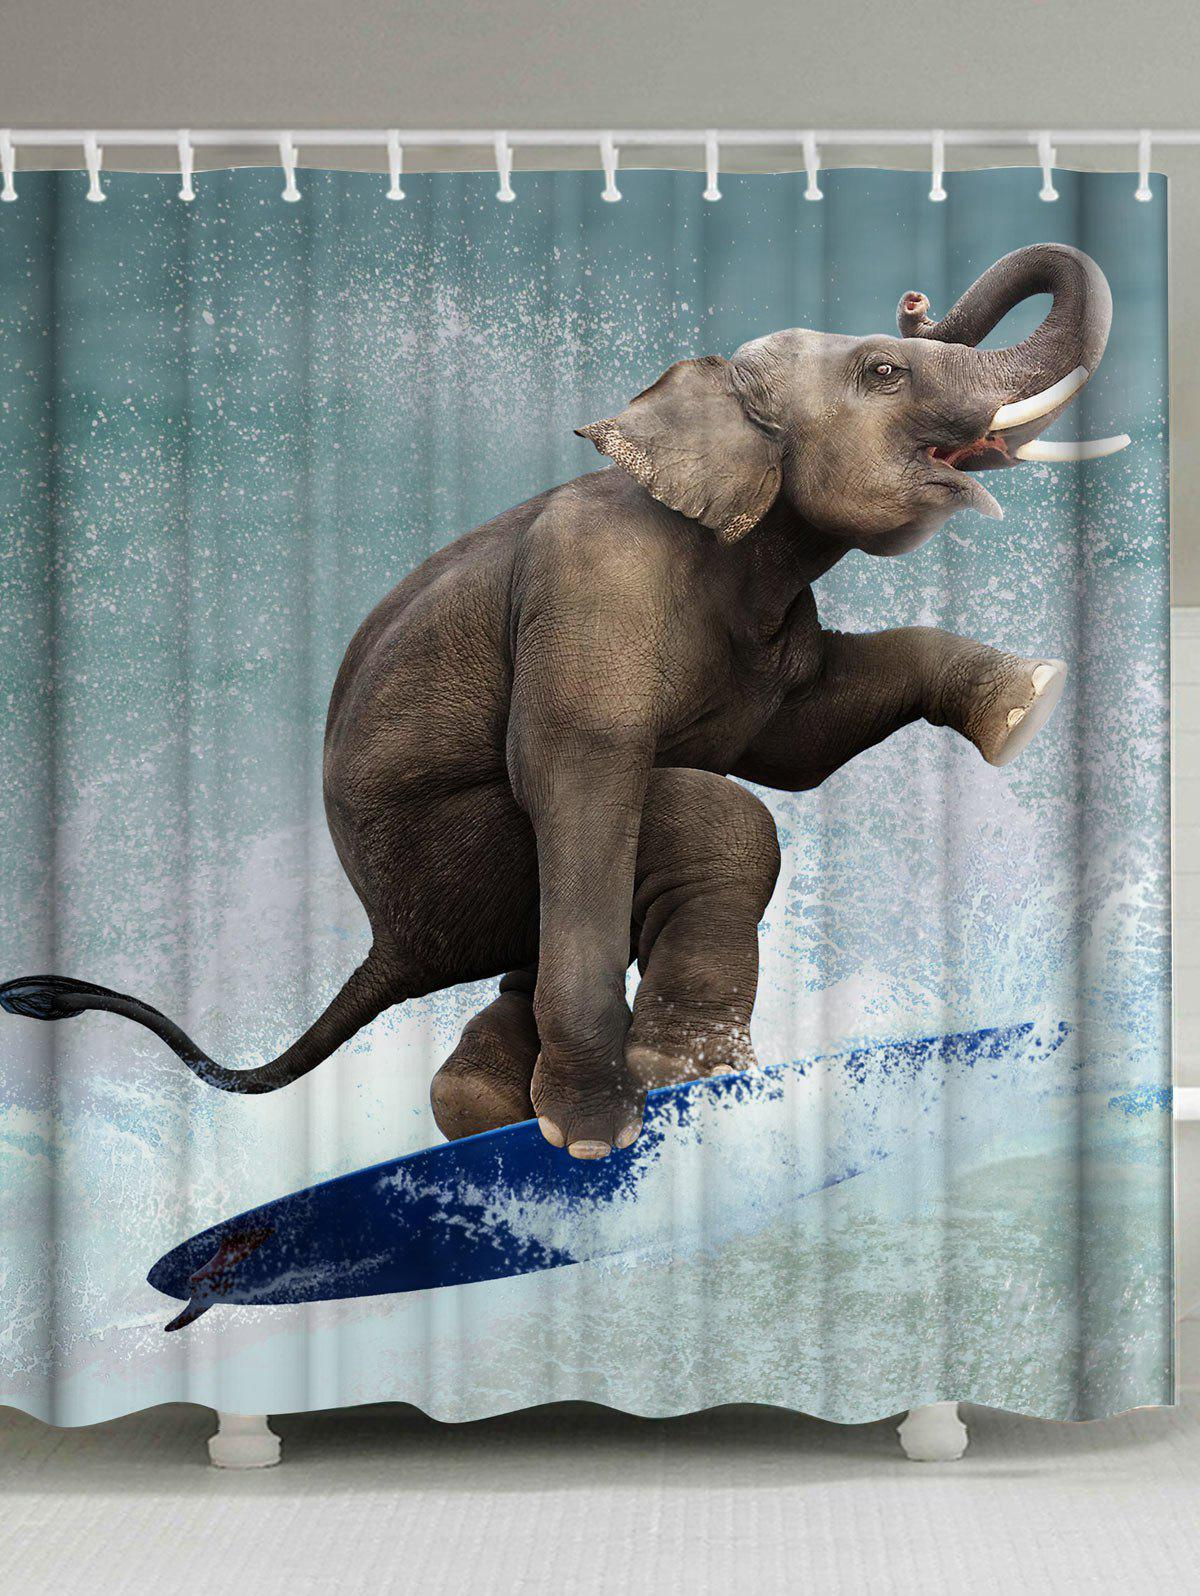 Affordable Waterproof Fabric Surfing Elephant Shower Curtain